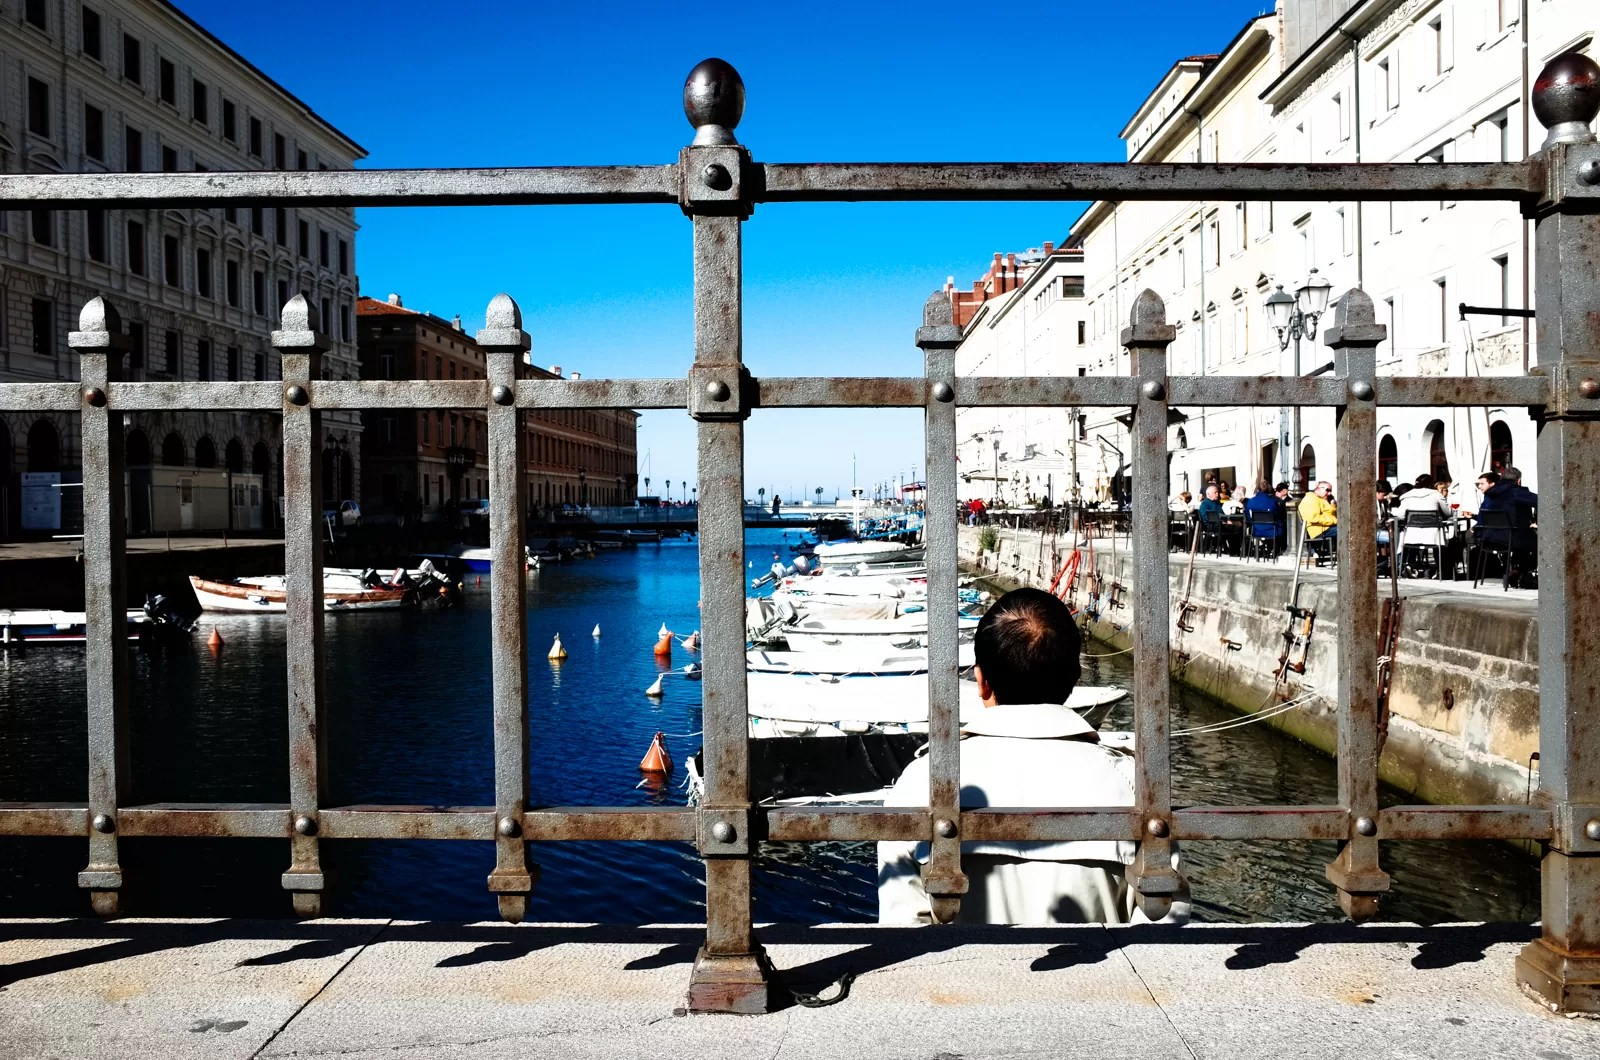 R0006646 - One Day in Trieste [Color Street Photography] - fotostreet.it